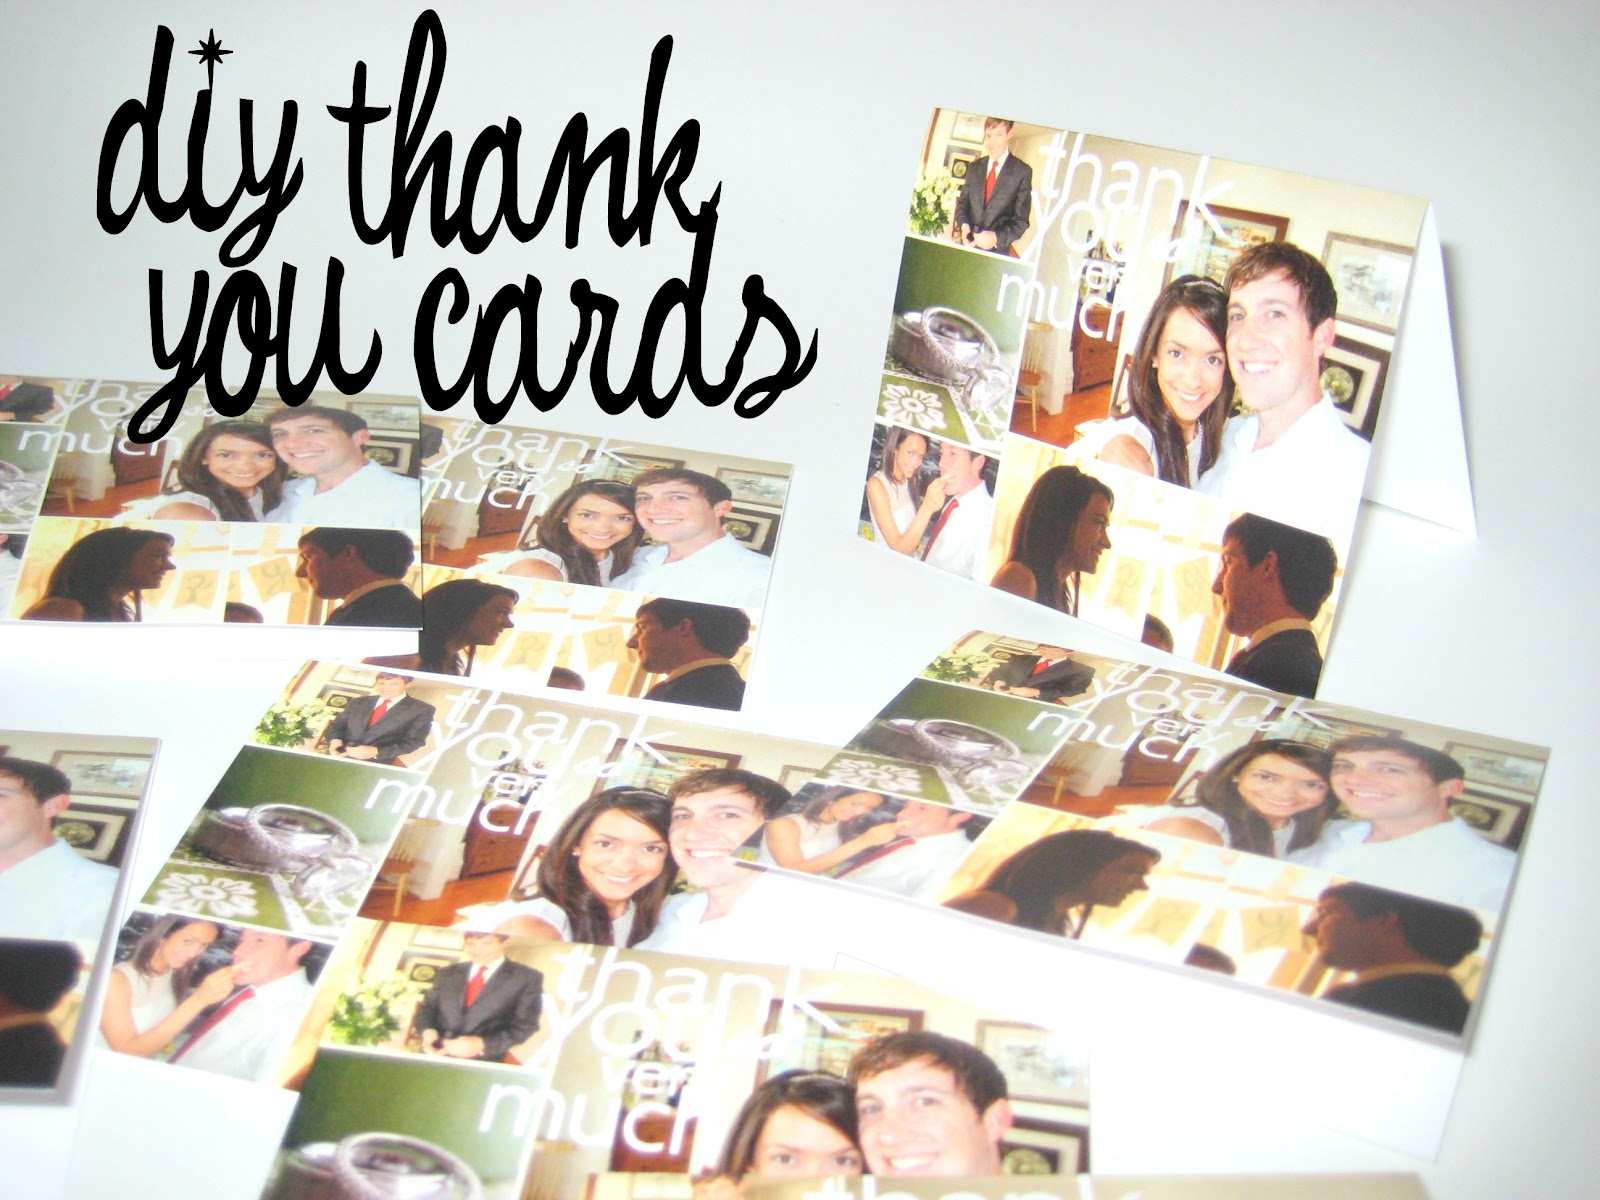 Stunning Thank You Cards Thank You Cards Diy Thank You Cards Online Diy Thank You Cards Birthday cards Diy Thank You Cards